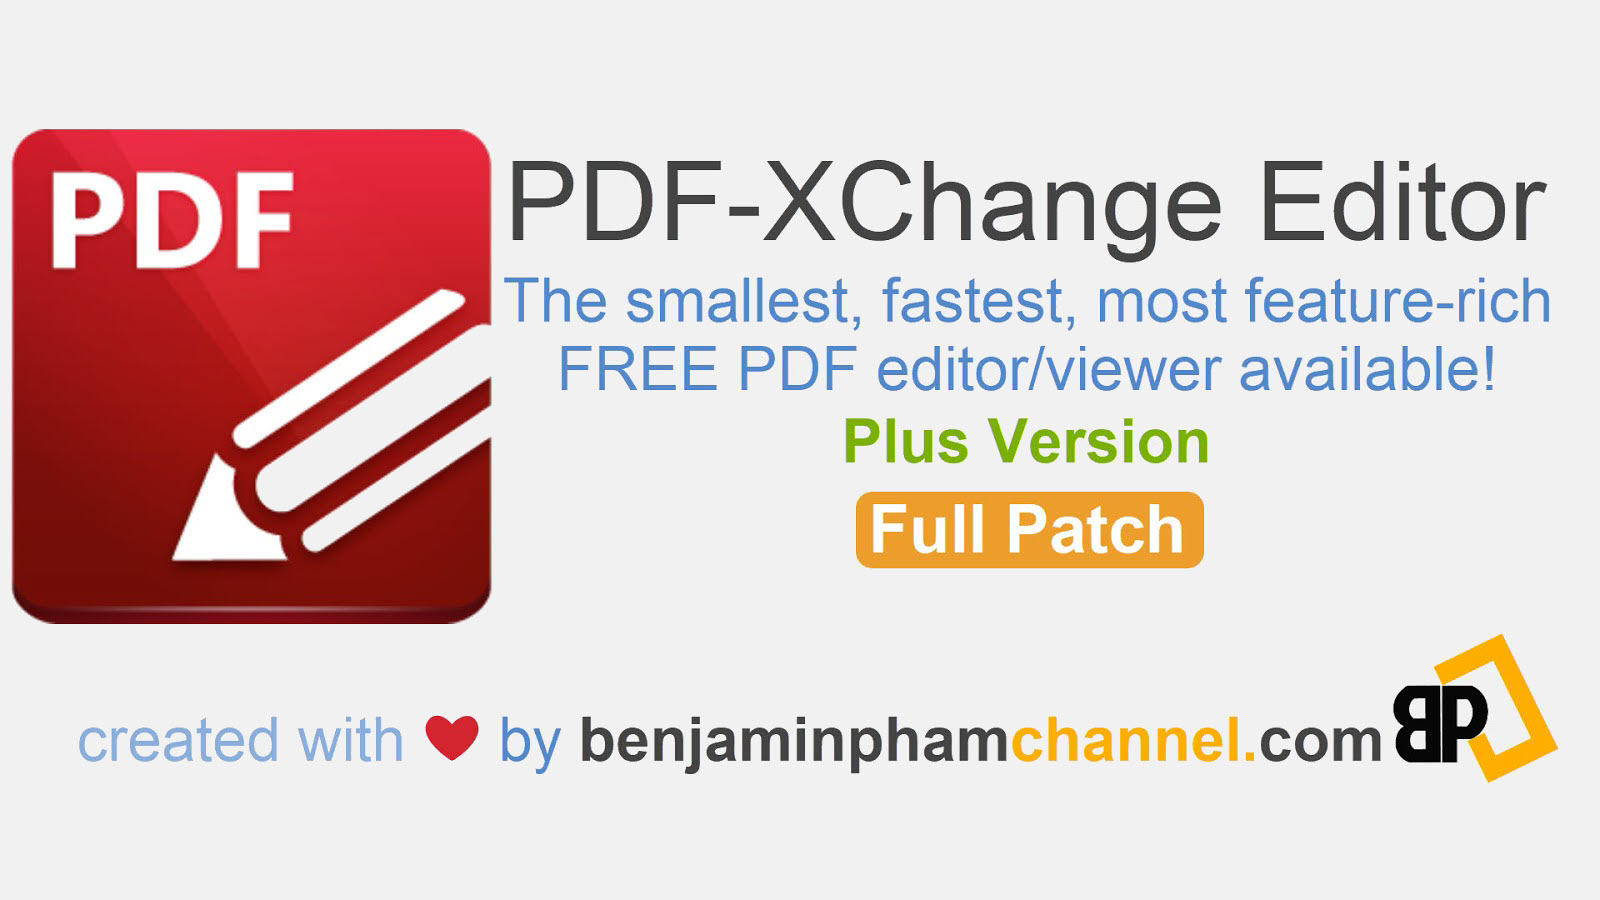 PDF-XChange Editor Plus 7.0.327 + Portable